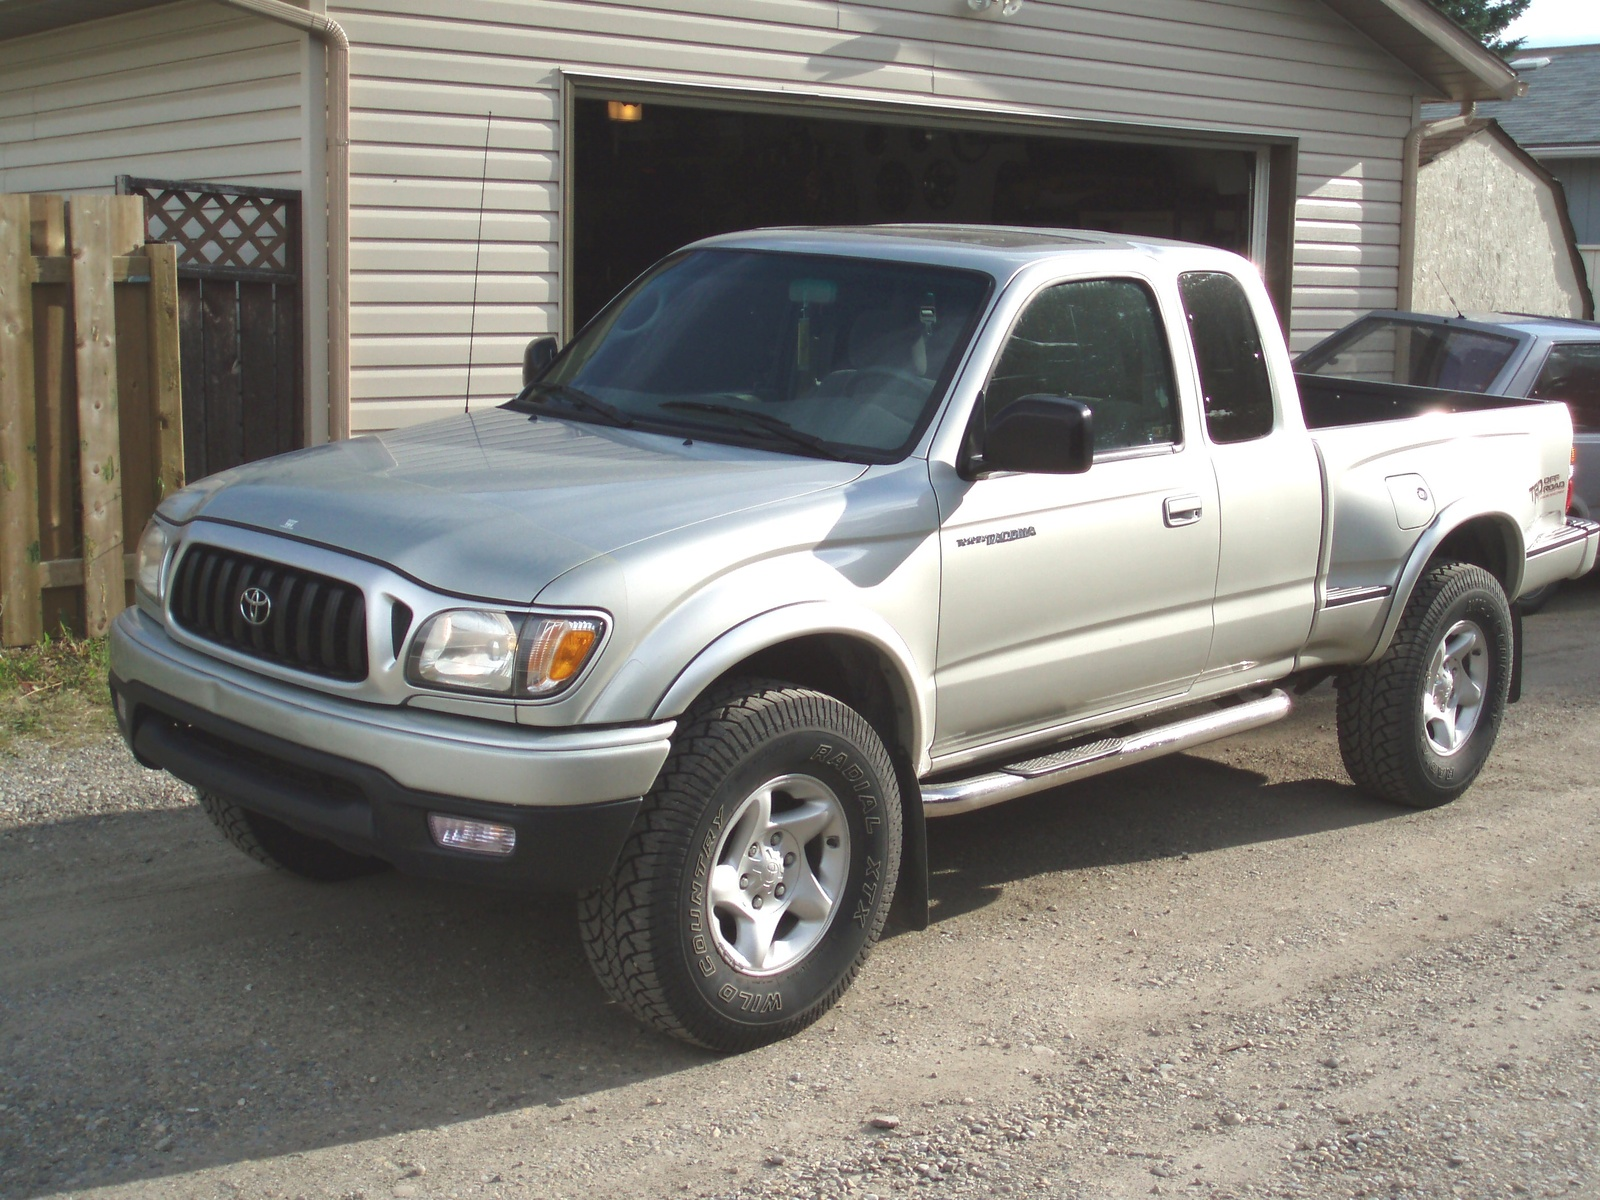 2002 toyota tacoma information and photos zombiedrive. Black Bedroom Furniture Sets. Home Design Ideas